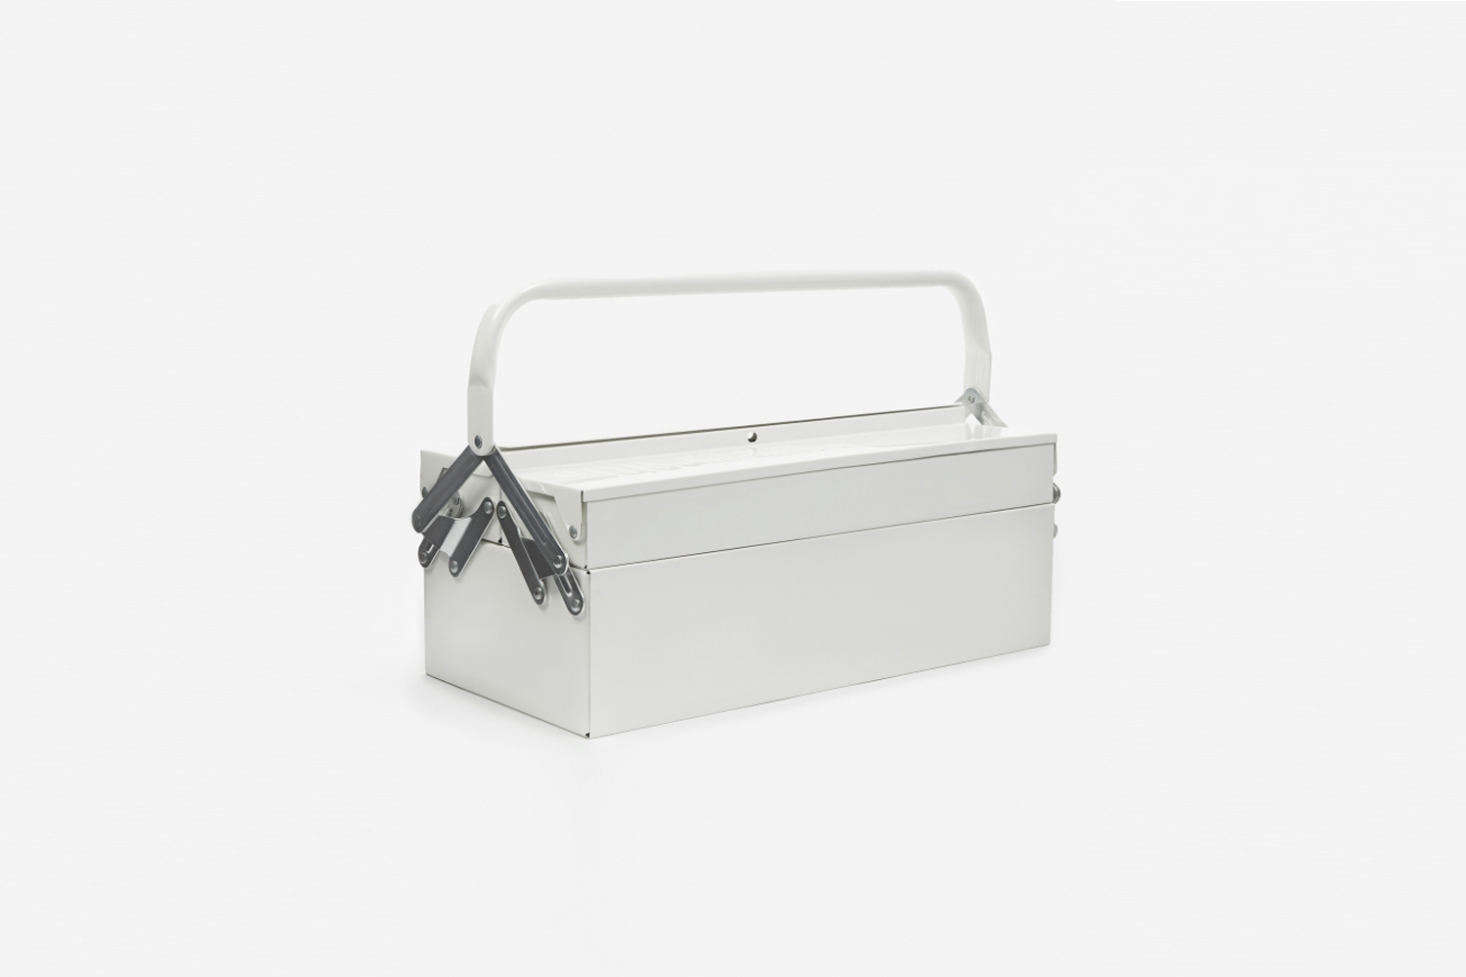 The House Doctor Toolbox in White is made entirely of white powder coated steel; $58.05 at Goodhood in London. It&#8